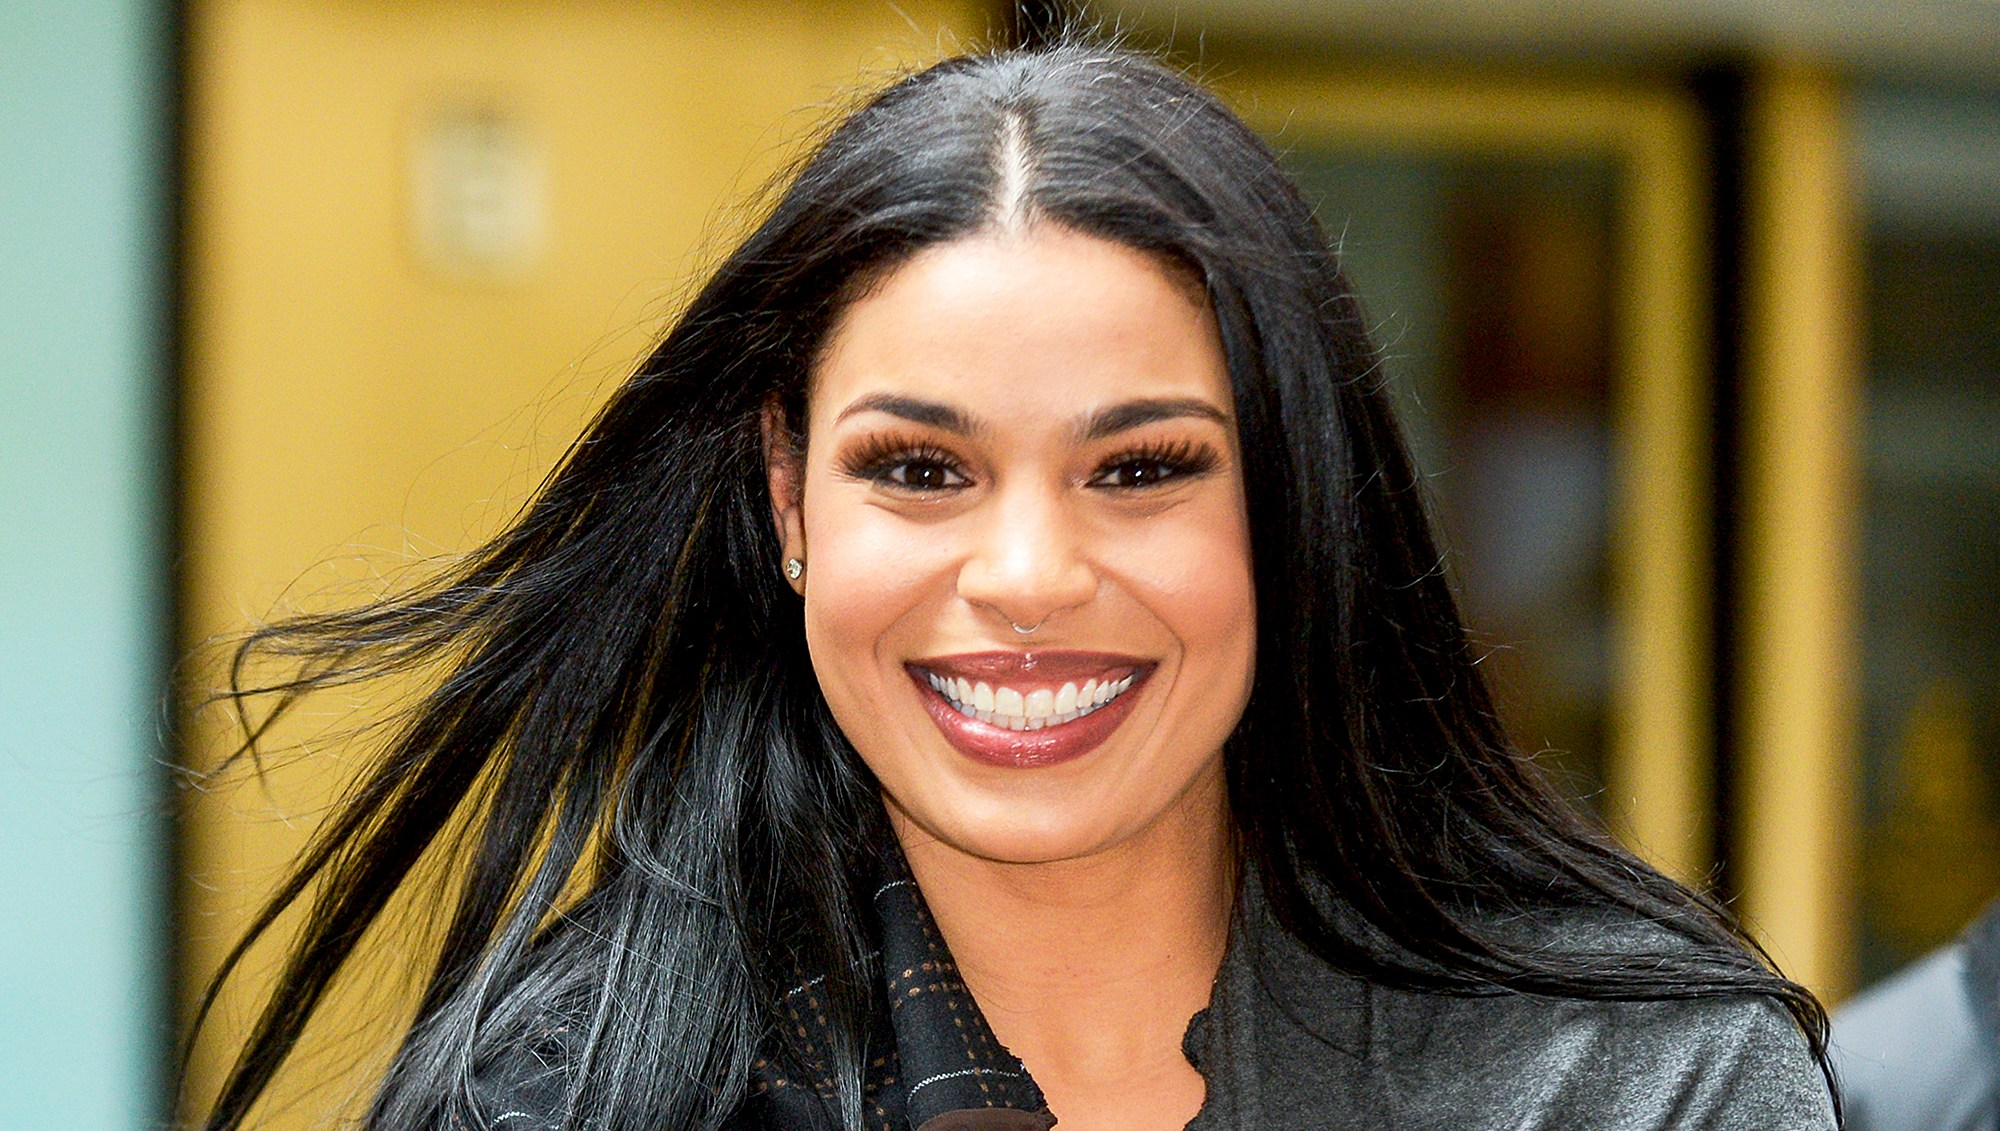 Jordin Sparks at the NBC Rockefeller Center Studios on February 23, 2017 in New York City.